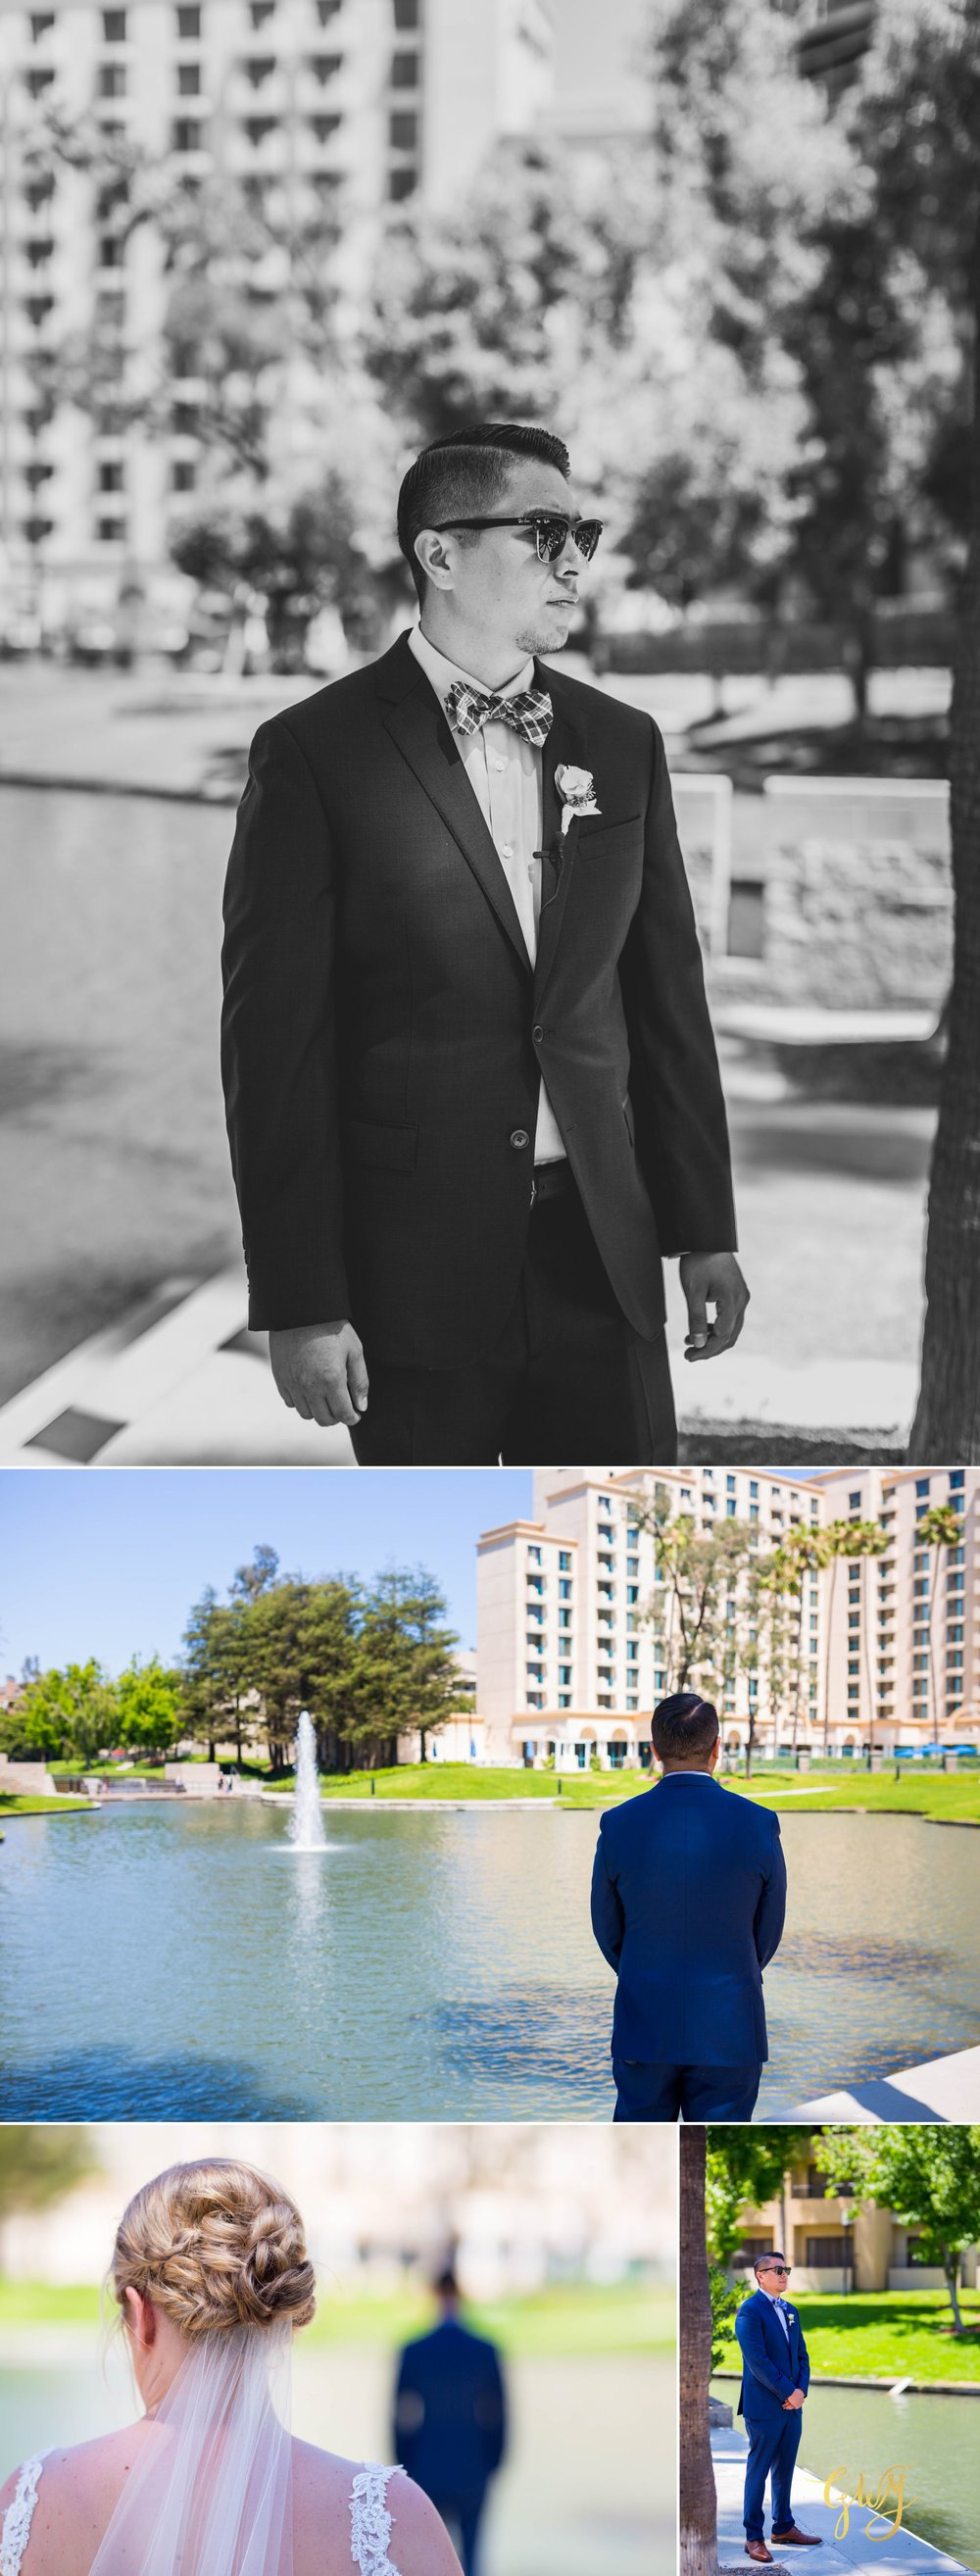 Javier + Kari Avenue of the Arts First Look Vintage Rose Wedding Ceremony Reception by Glass Woods Media 5.jpg